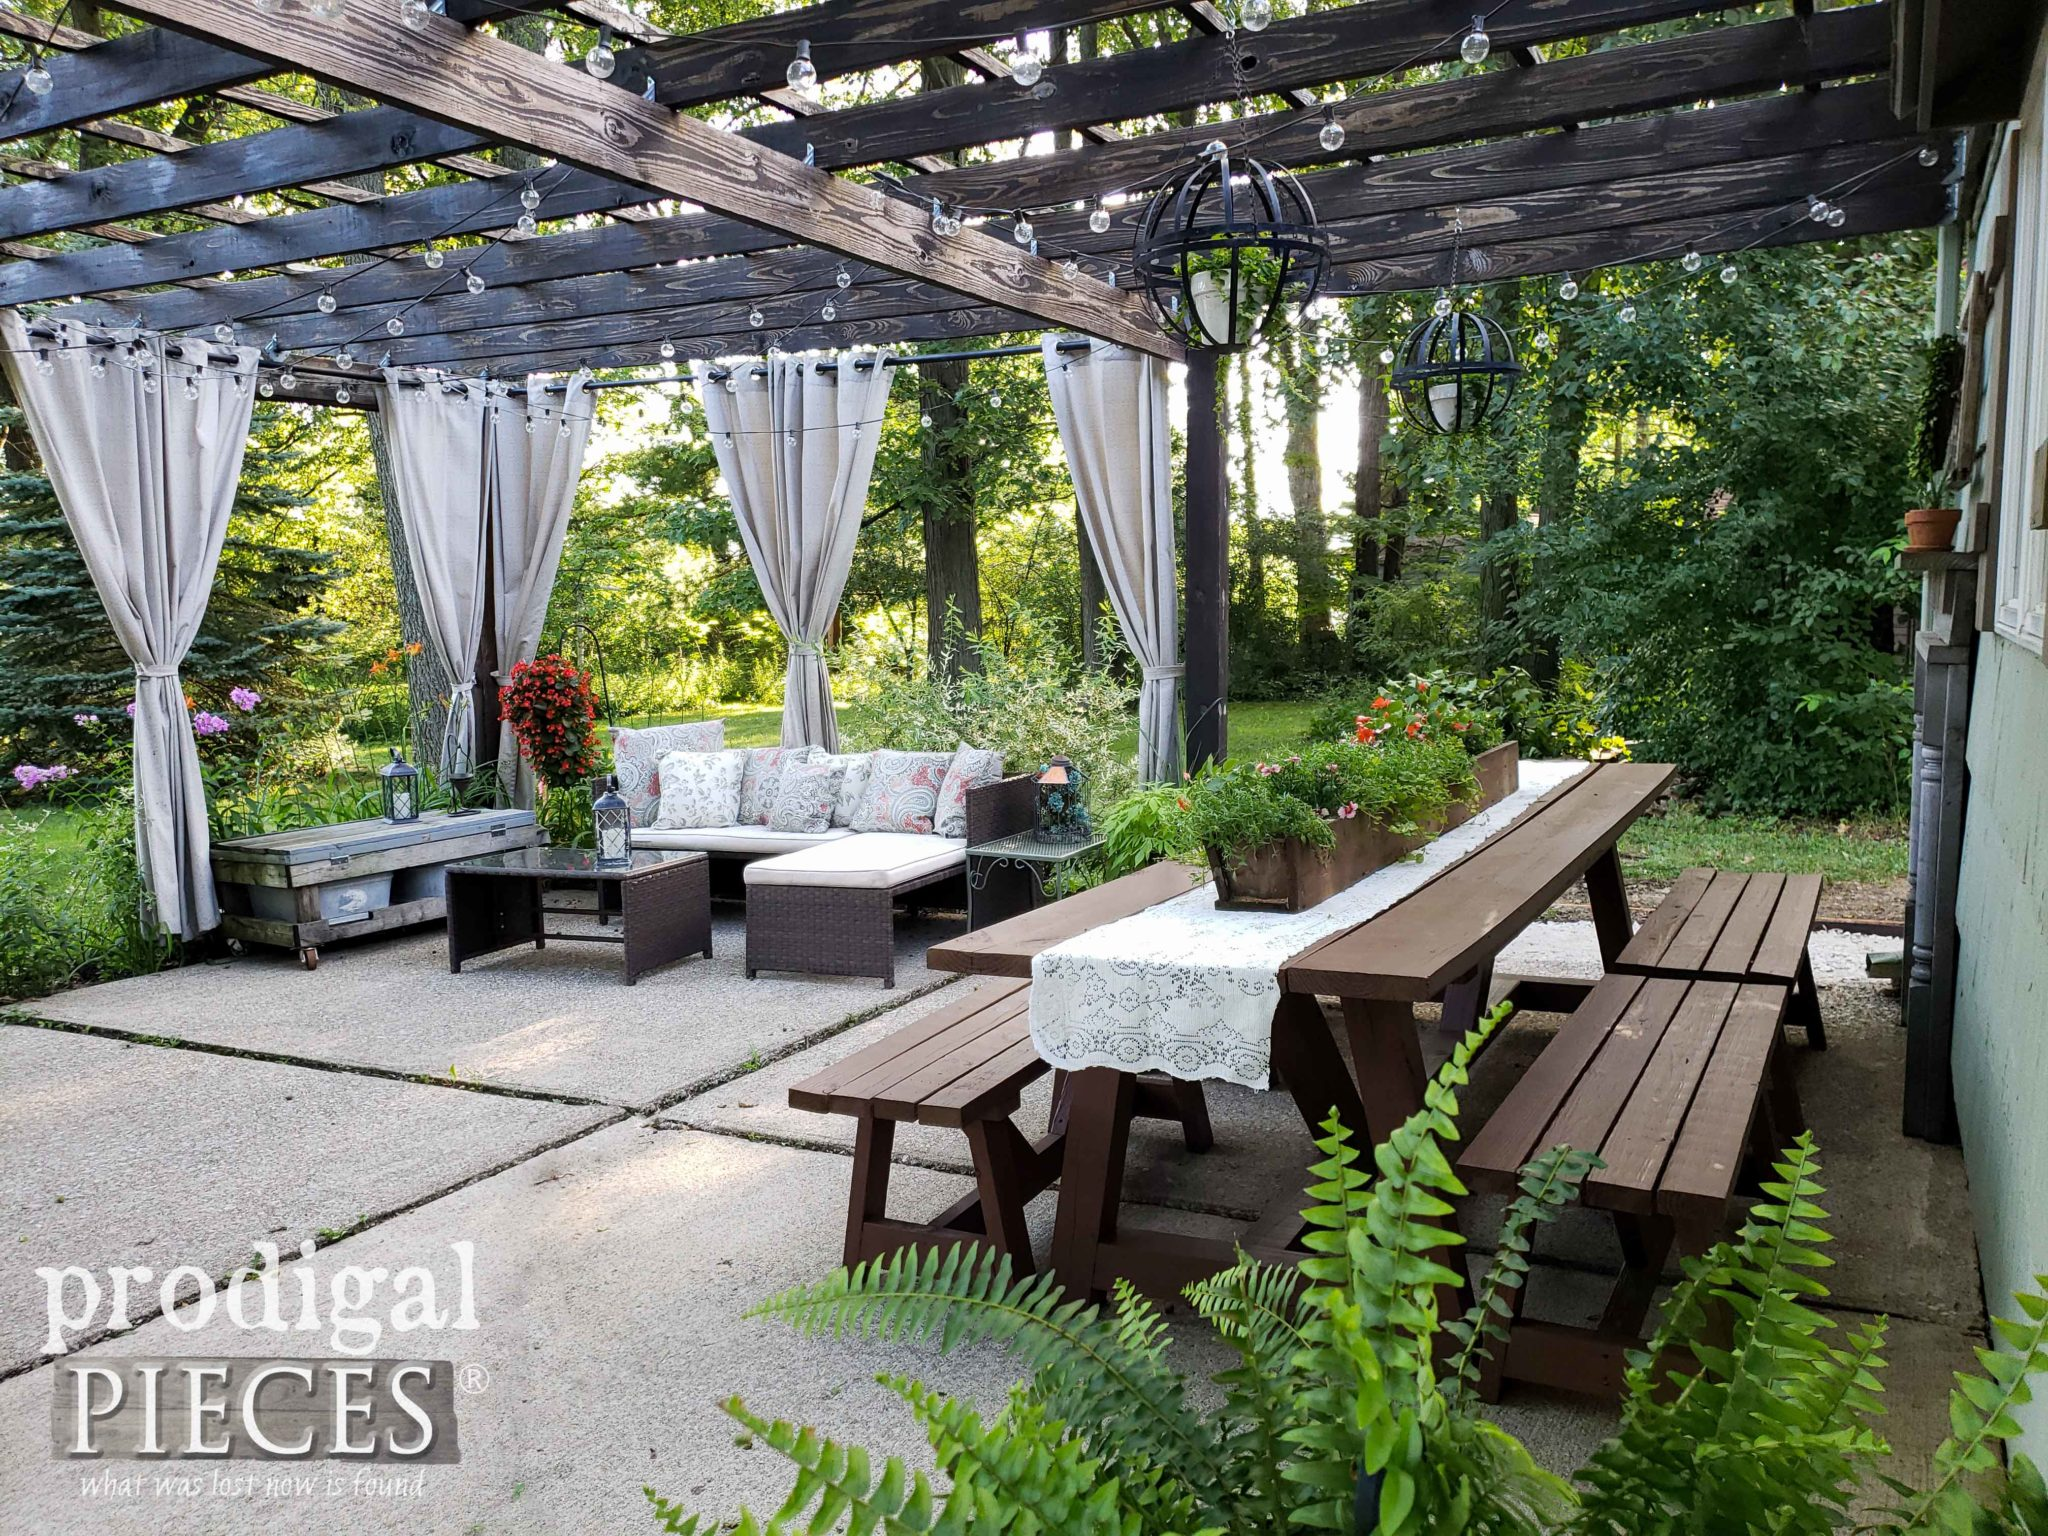 Outdoor Patio Dining Area with DIY Pergola by Larissa of Prodigal Pieces | prodigalpieces.com #prodigalpieces #patio #home #diy #outdoor #homedecor